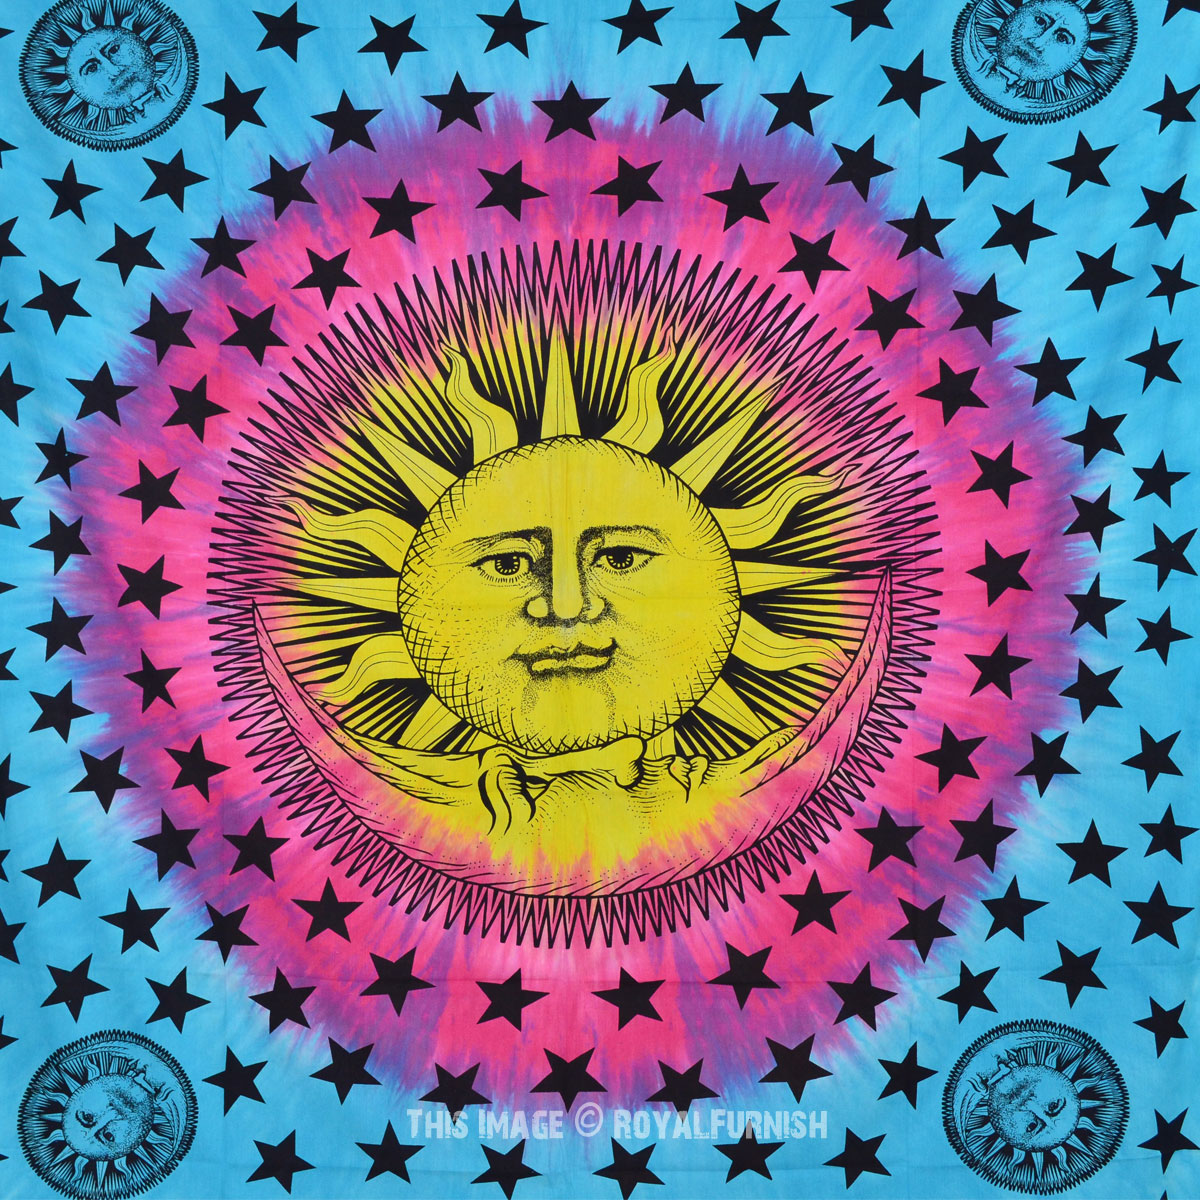 Blue and Yellow Psychedelic Sun Moon Tapestry Tie Dye Hippie Wall Hanging Bedspread - RoyalFurnish.com